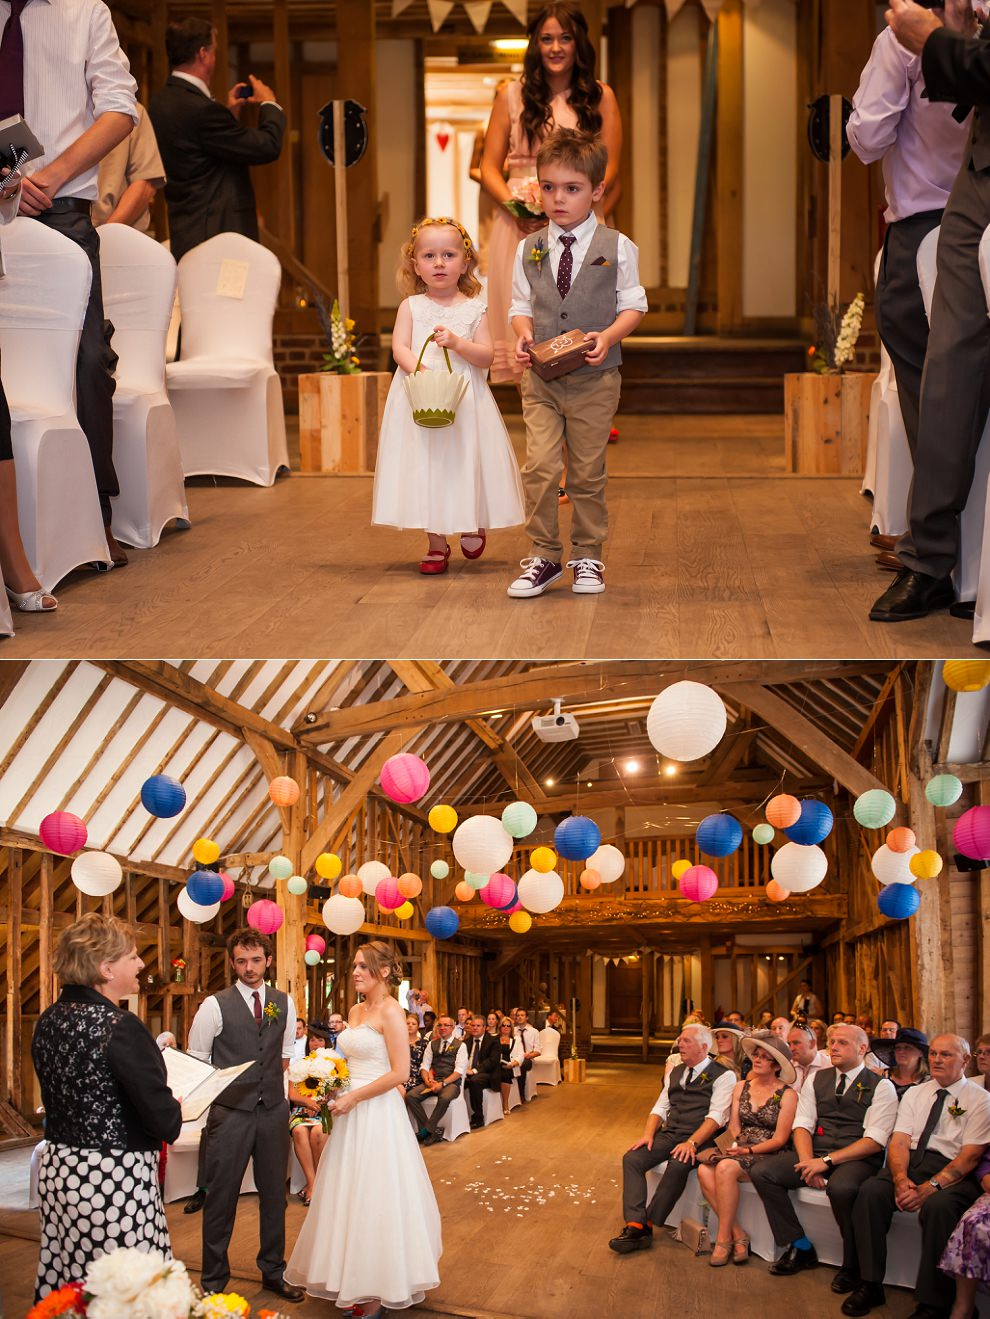 TewinBury-Farm-Barn-Wedding-Fiona-Ian-11